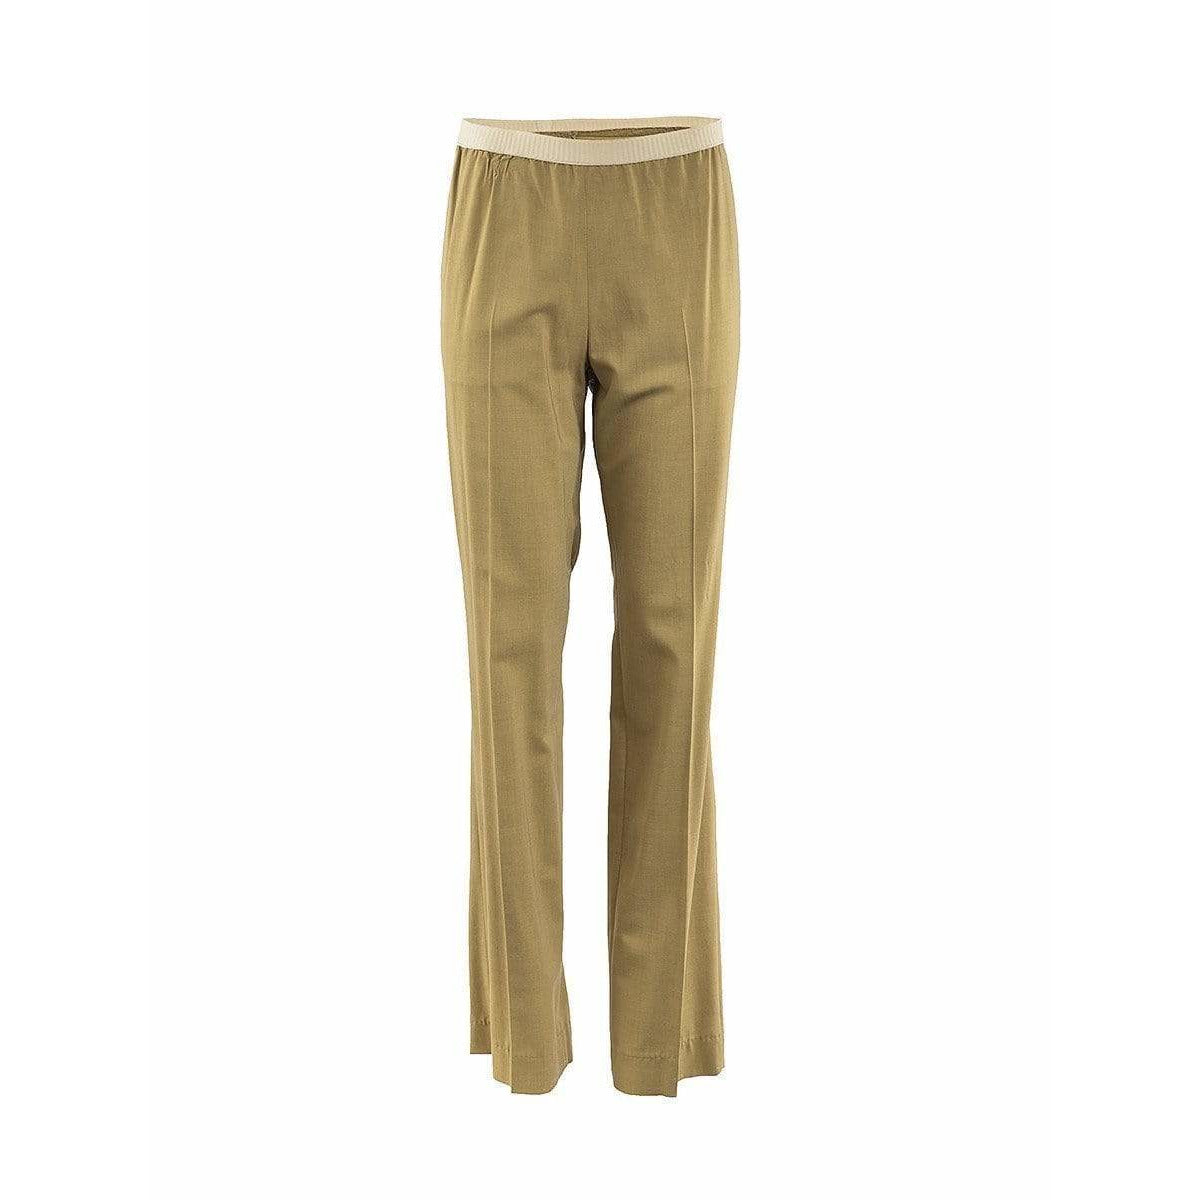 Womens Pants - Pleated Elastic Pant